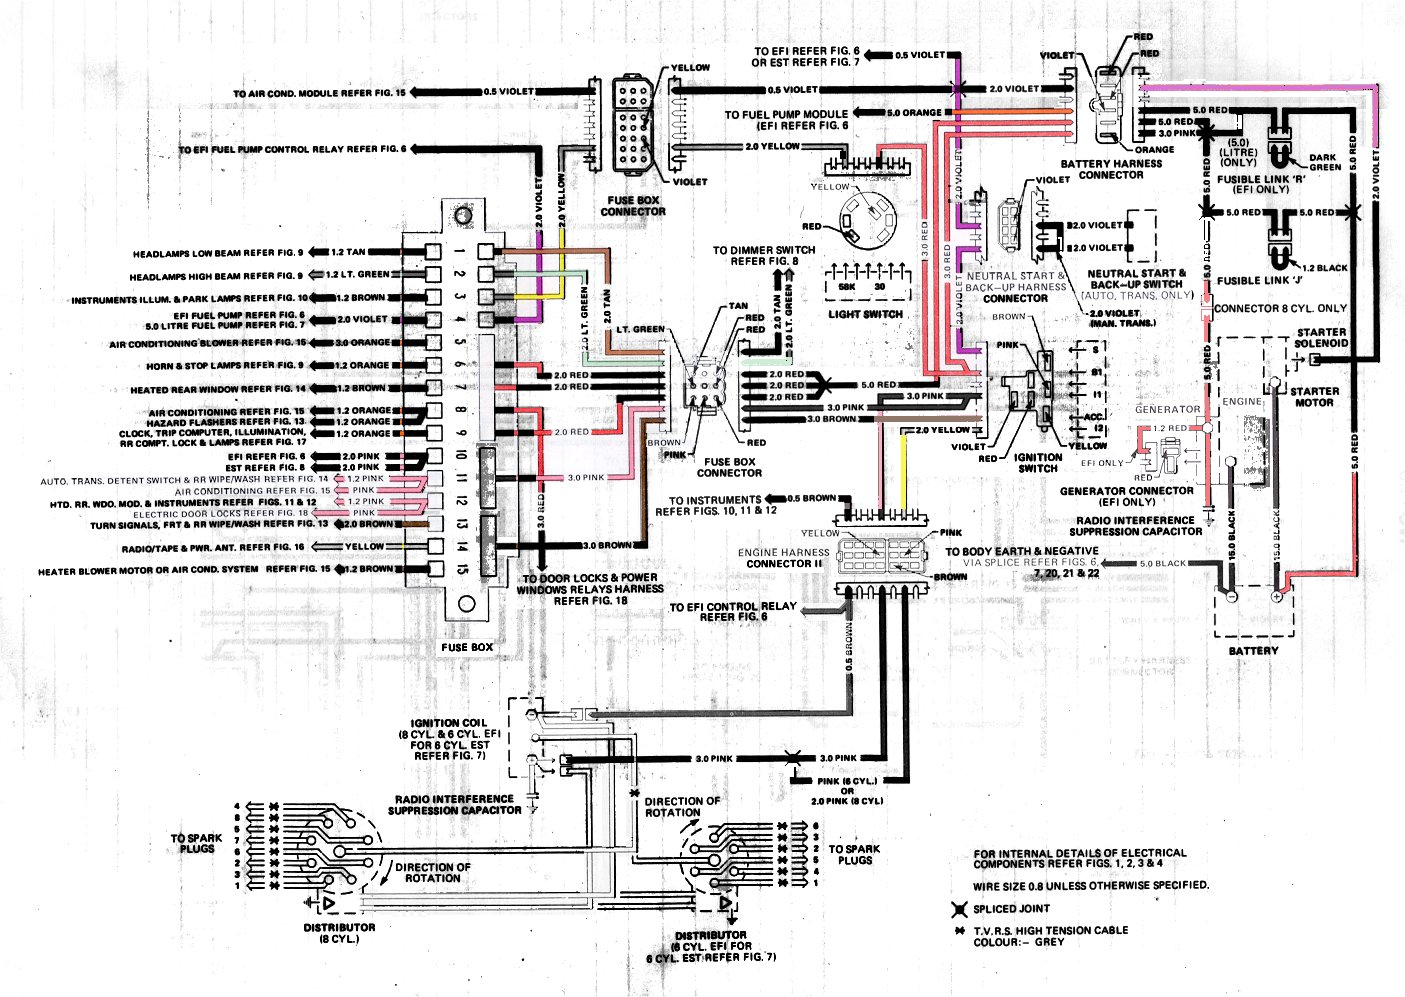 Wiring%2BDiagram%2BHolden%2BVK%2BCommodore Yzf Wiring Diagram on battery diagrams, troubleshooting diagrams, smart car diagrams, series and parallel circuits diagrams, motor diagrams, electrical diagrams, pinout diagrams, internet of things diagrams, led circuit diagrams, electronic circuit diagrams, sincgars radio configurations diagrams, transformer diagrams, gmc fuse box diagrams, lighting diagrams, engine diagrams, honda motorcycle repair diagrams, switch diagrams, friendship bracelet diagrams, hvac diagrams,